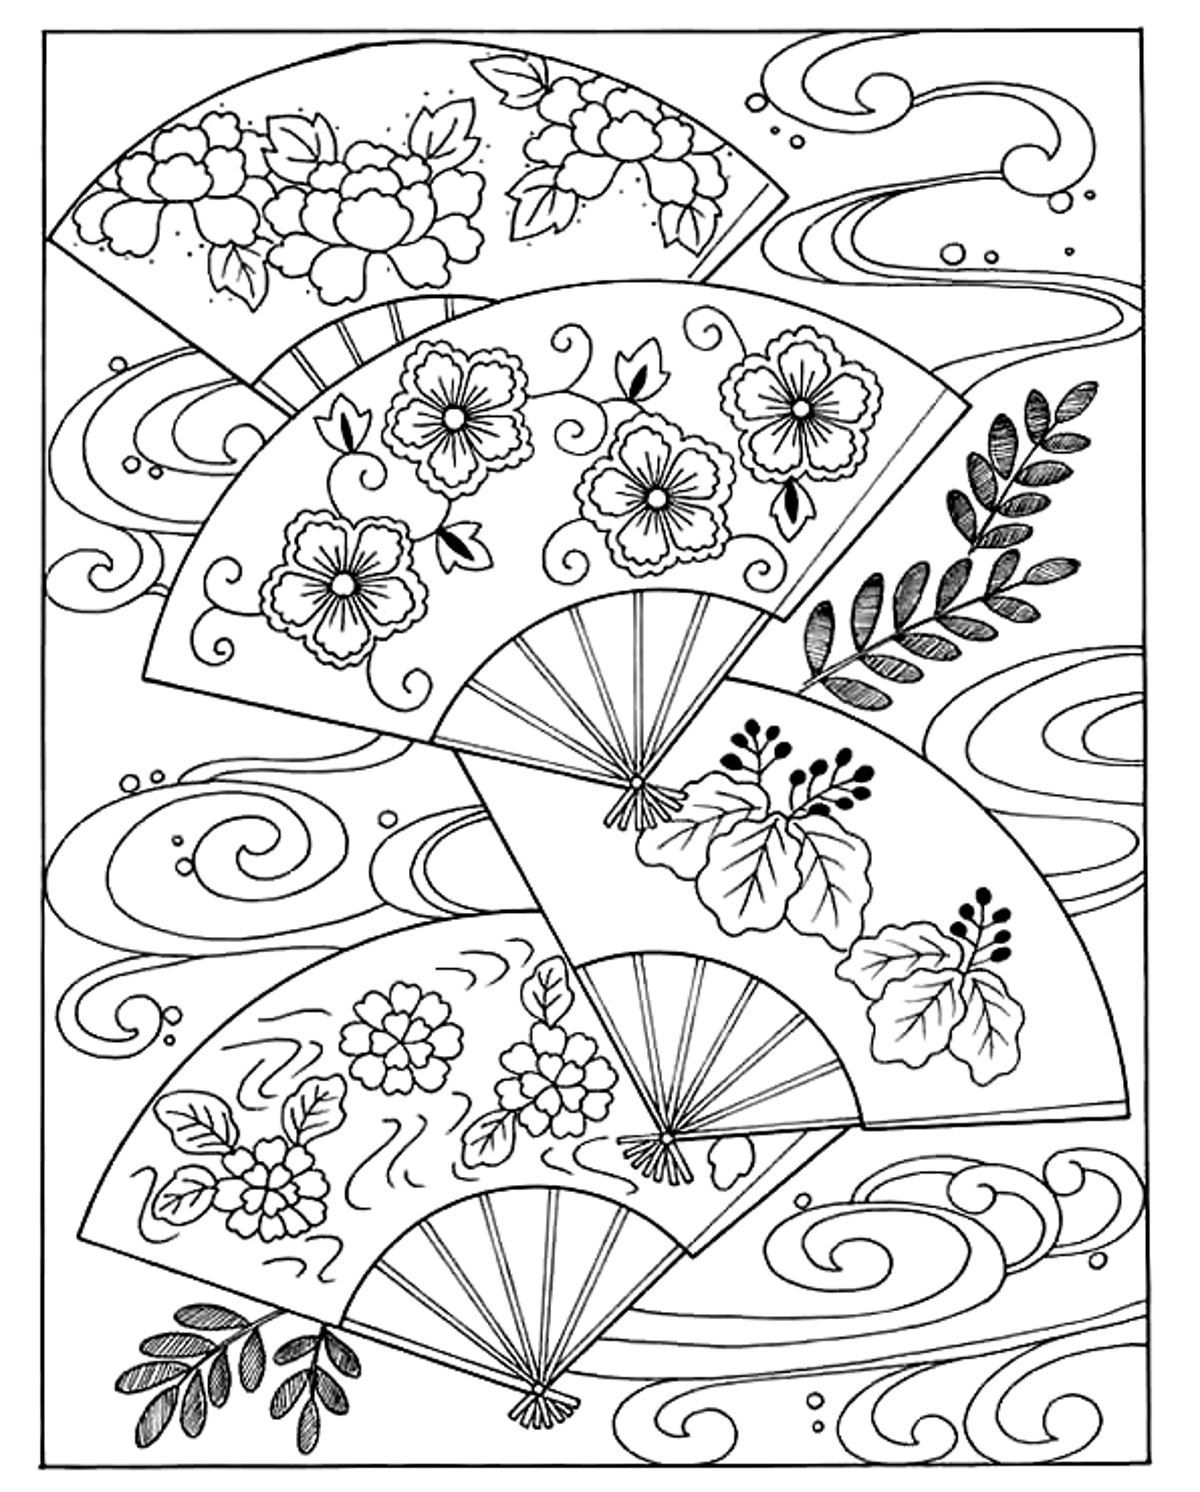 Free printable japanese coloring pages for adults - Japanese Koi Coloring Pages Free Printable Japanese Coloring Pages